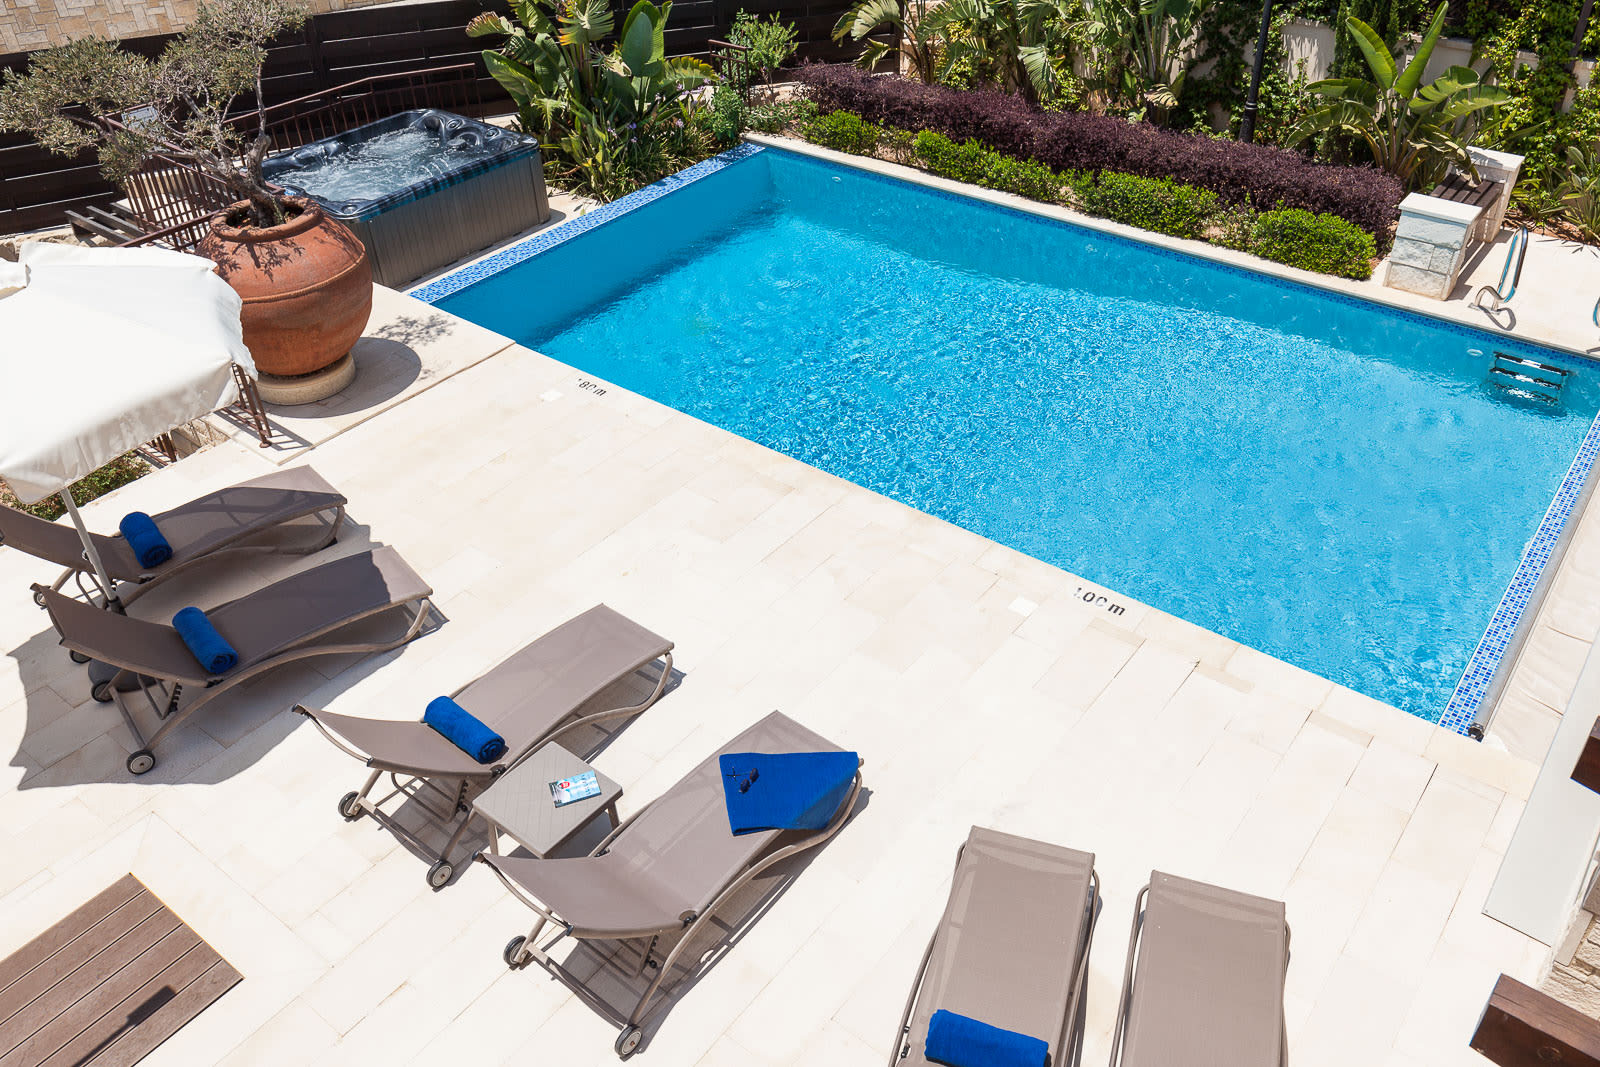 Pool ans sunloungers